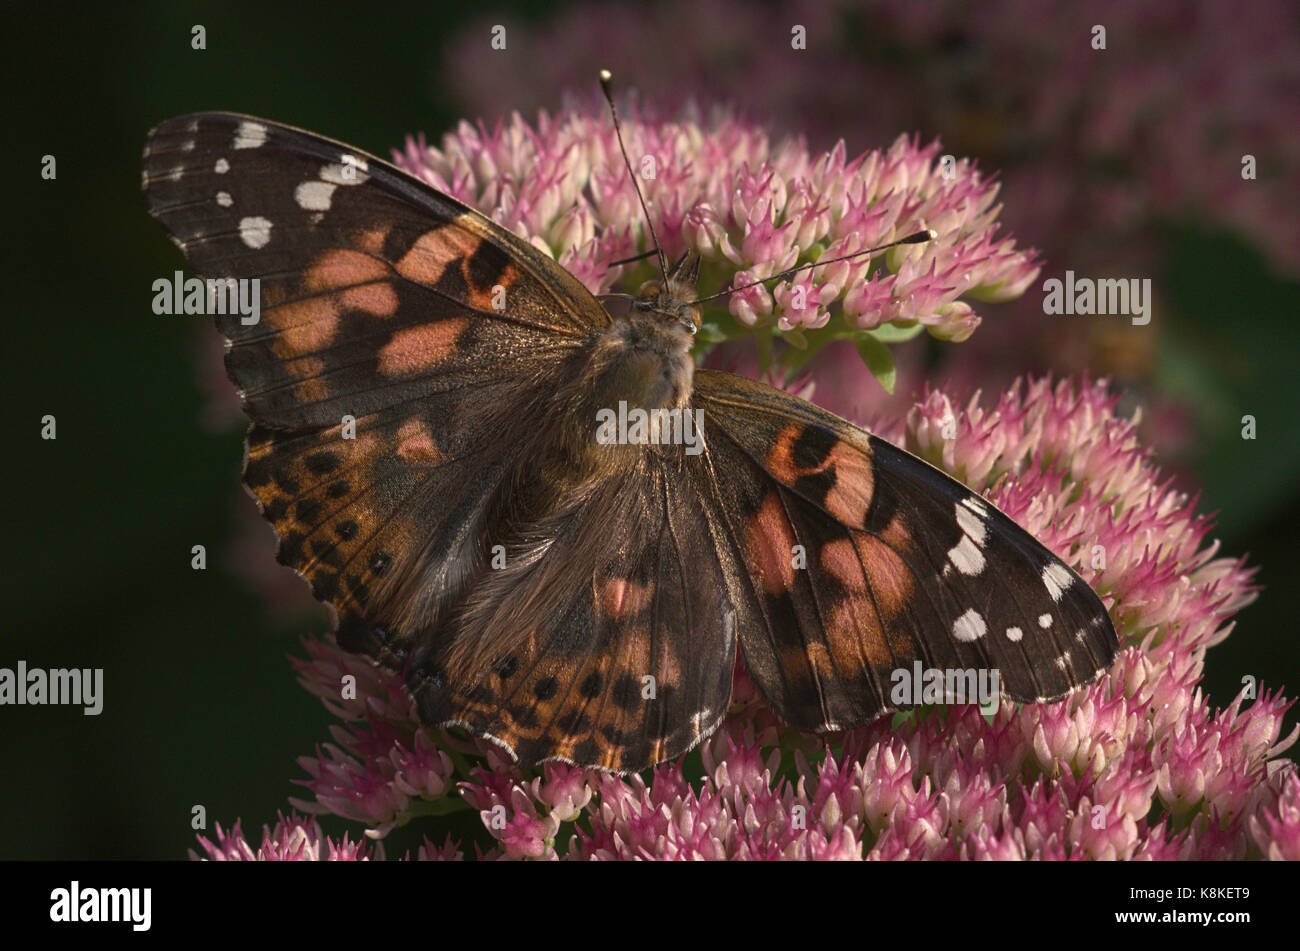 American Painted Beauty Butterfly Nectaring Sedum Flowers - Stock Image